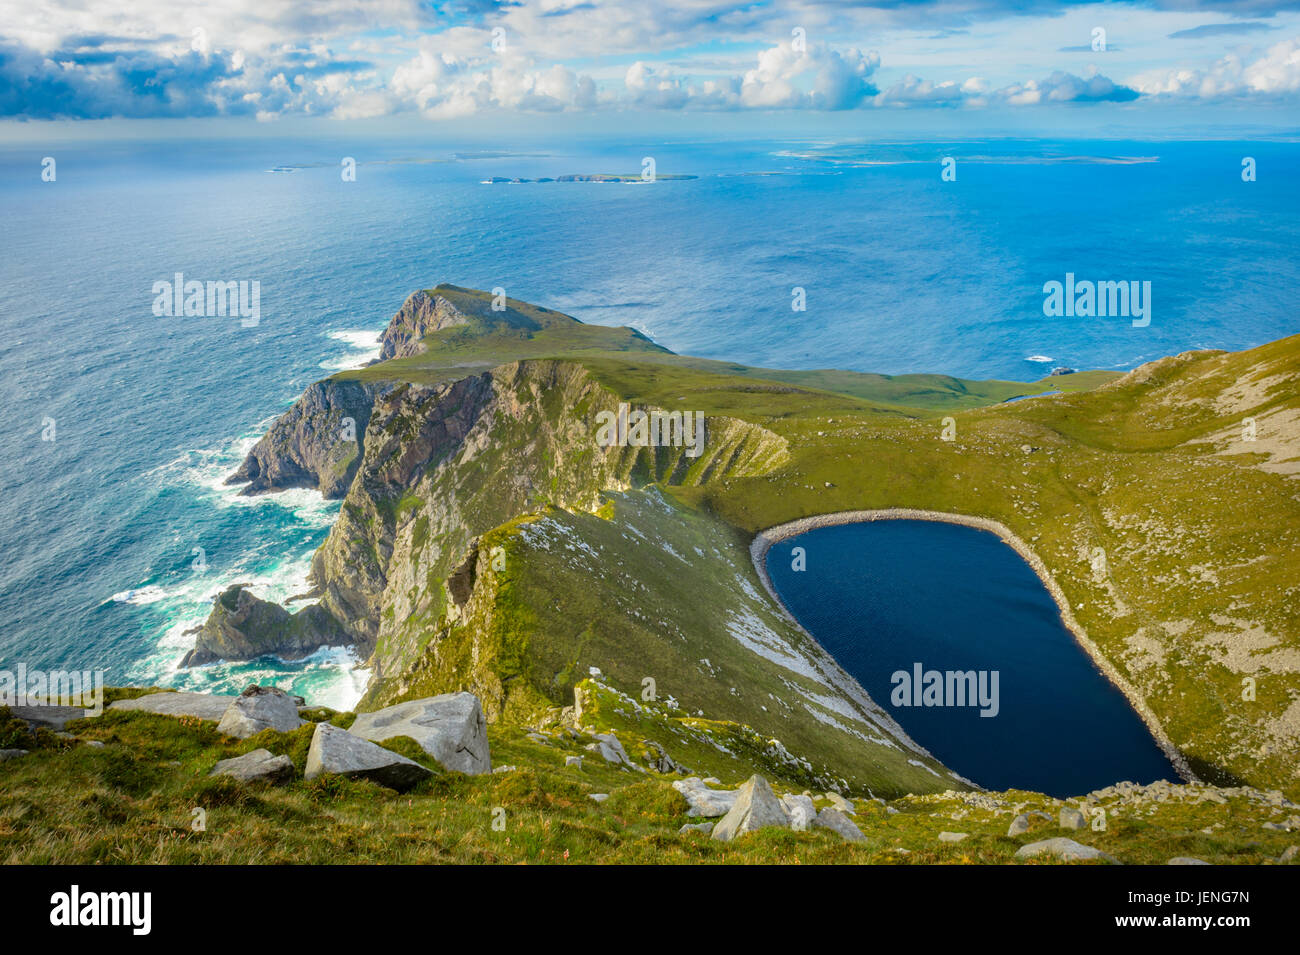 A lake in a hill on Achill island, Co. Mayo. - Stock Image